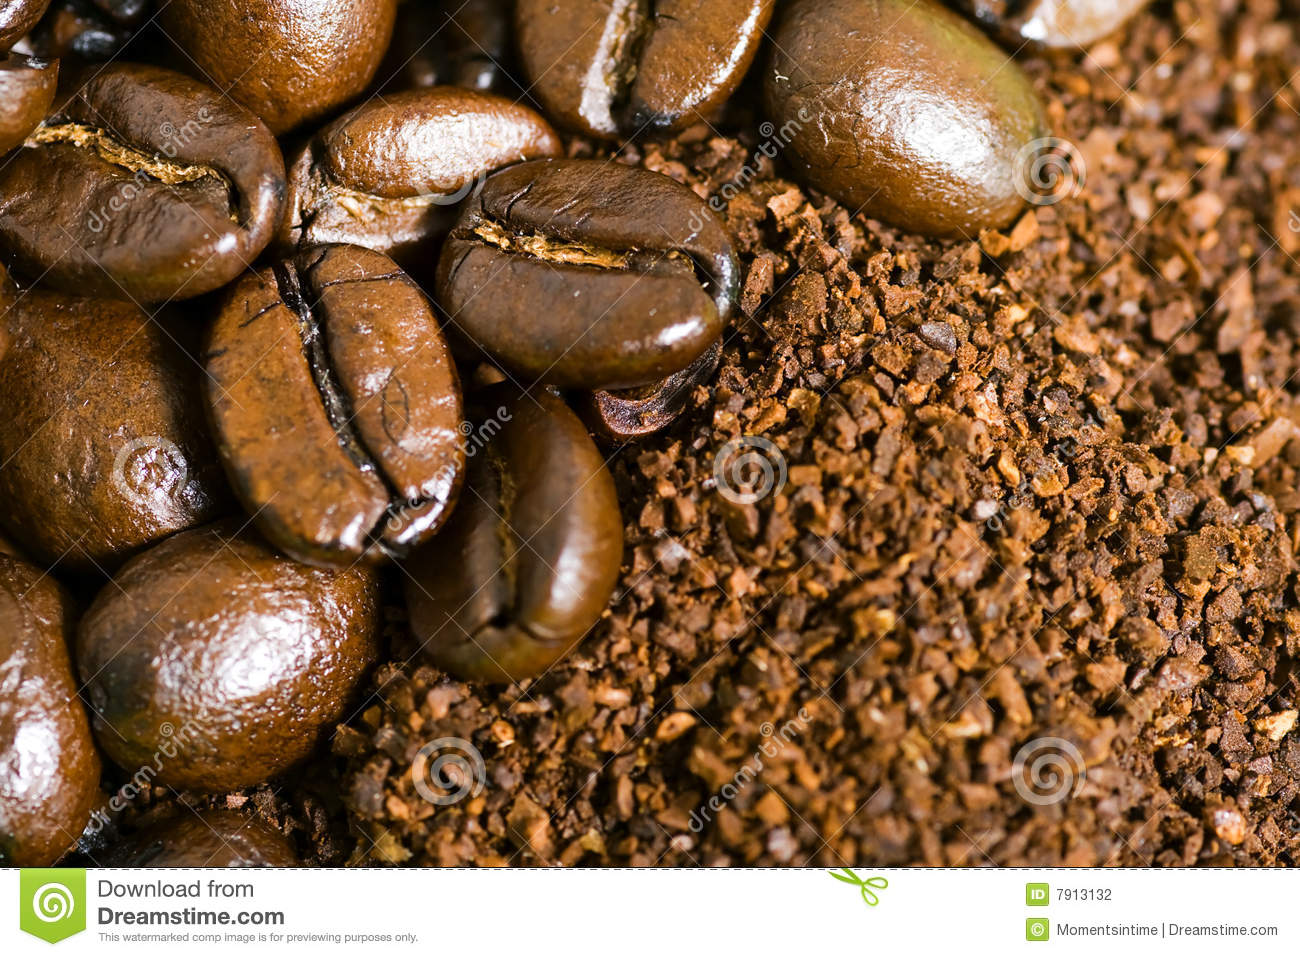 ground coffee stock photo - photo #48